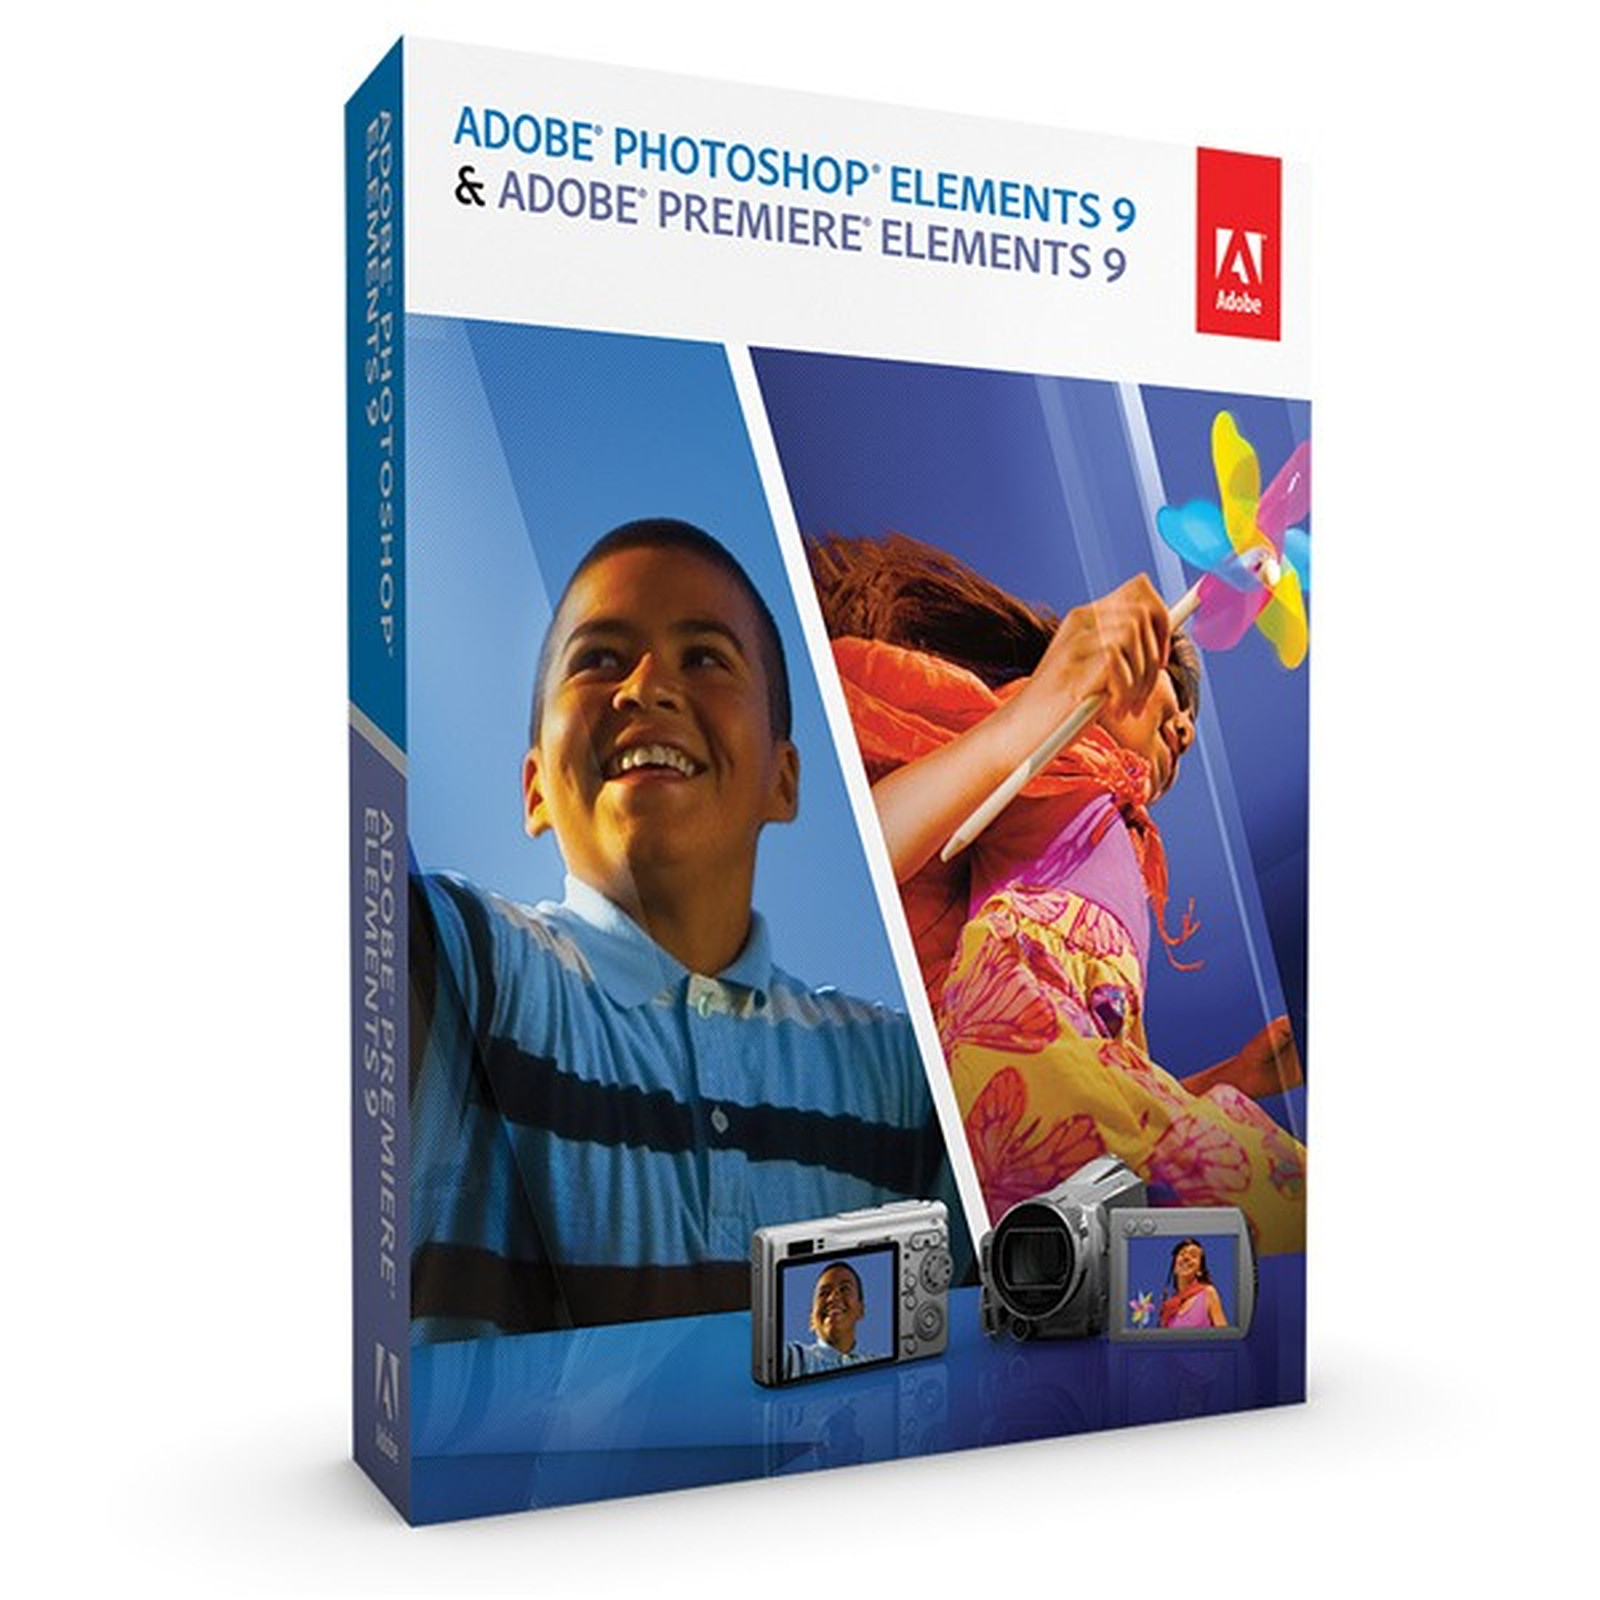 Adobe Photoshop Elements 9 & Adobe Premiere Elements 9 Mise à jour